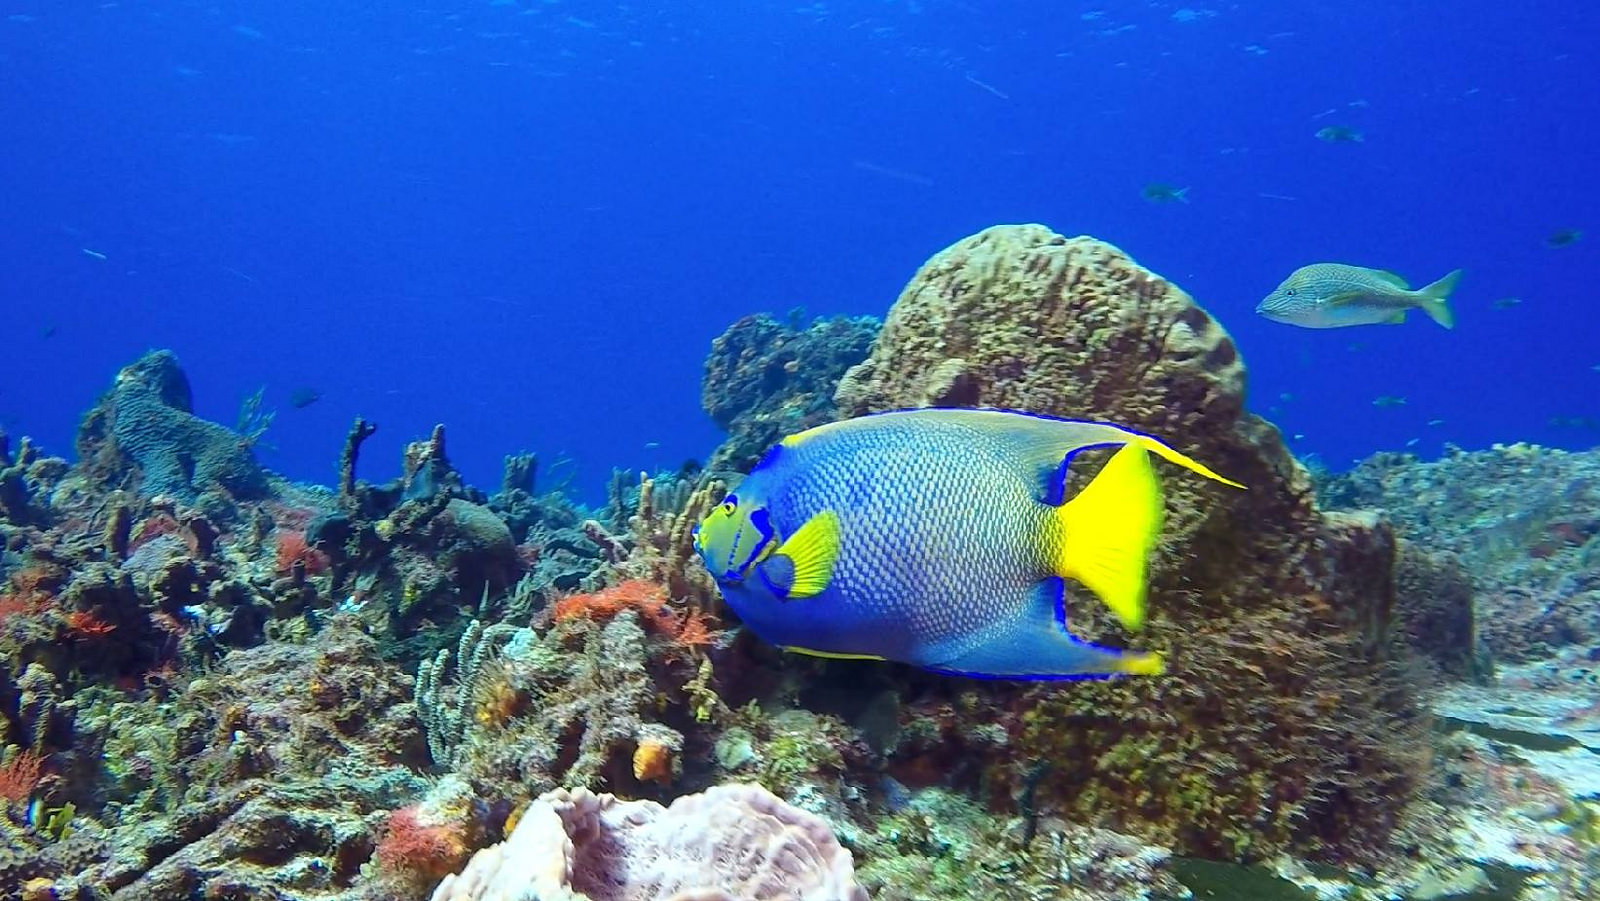 The 15 Most Beautiful Coral Reefs In The World  The 15 Most Bea...